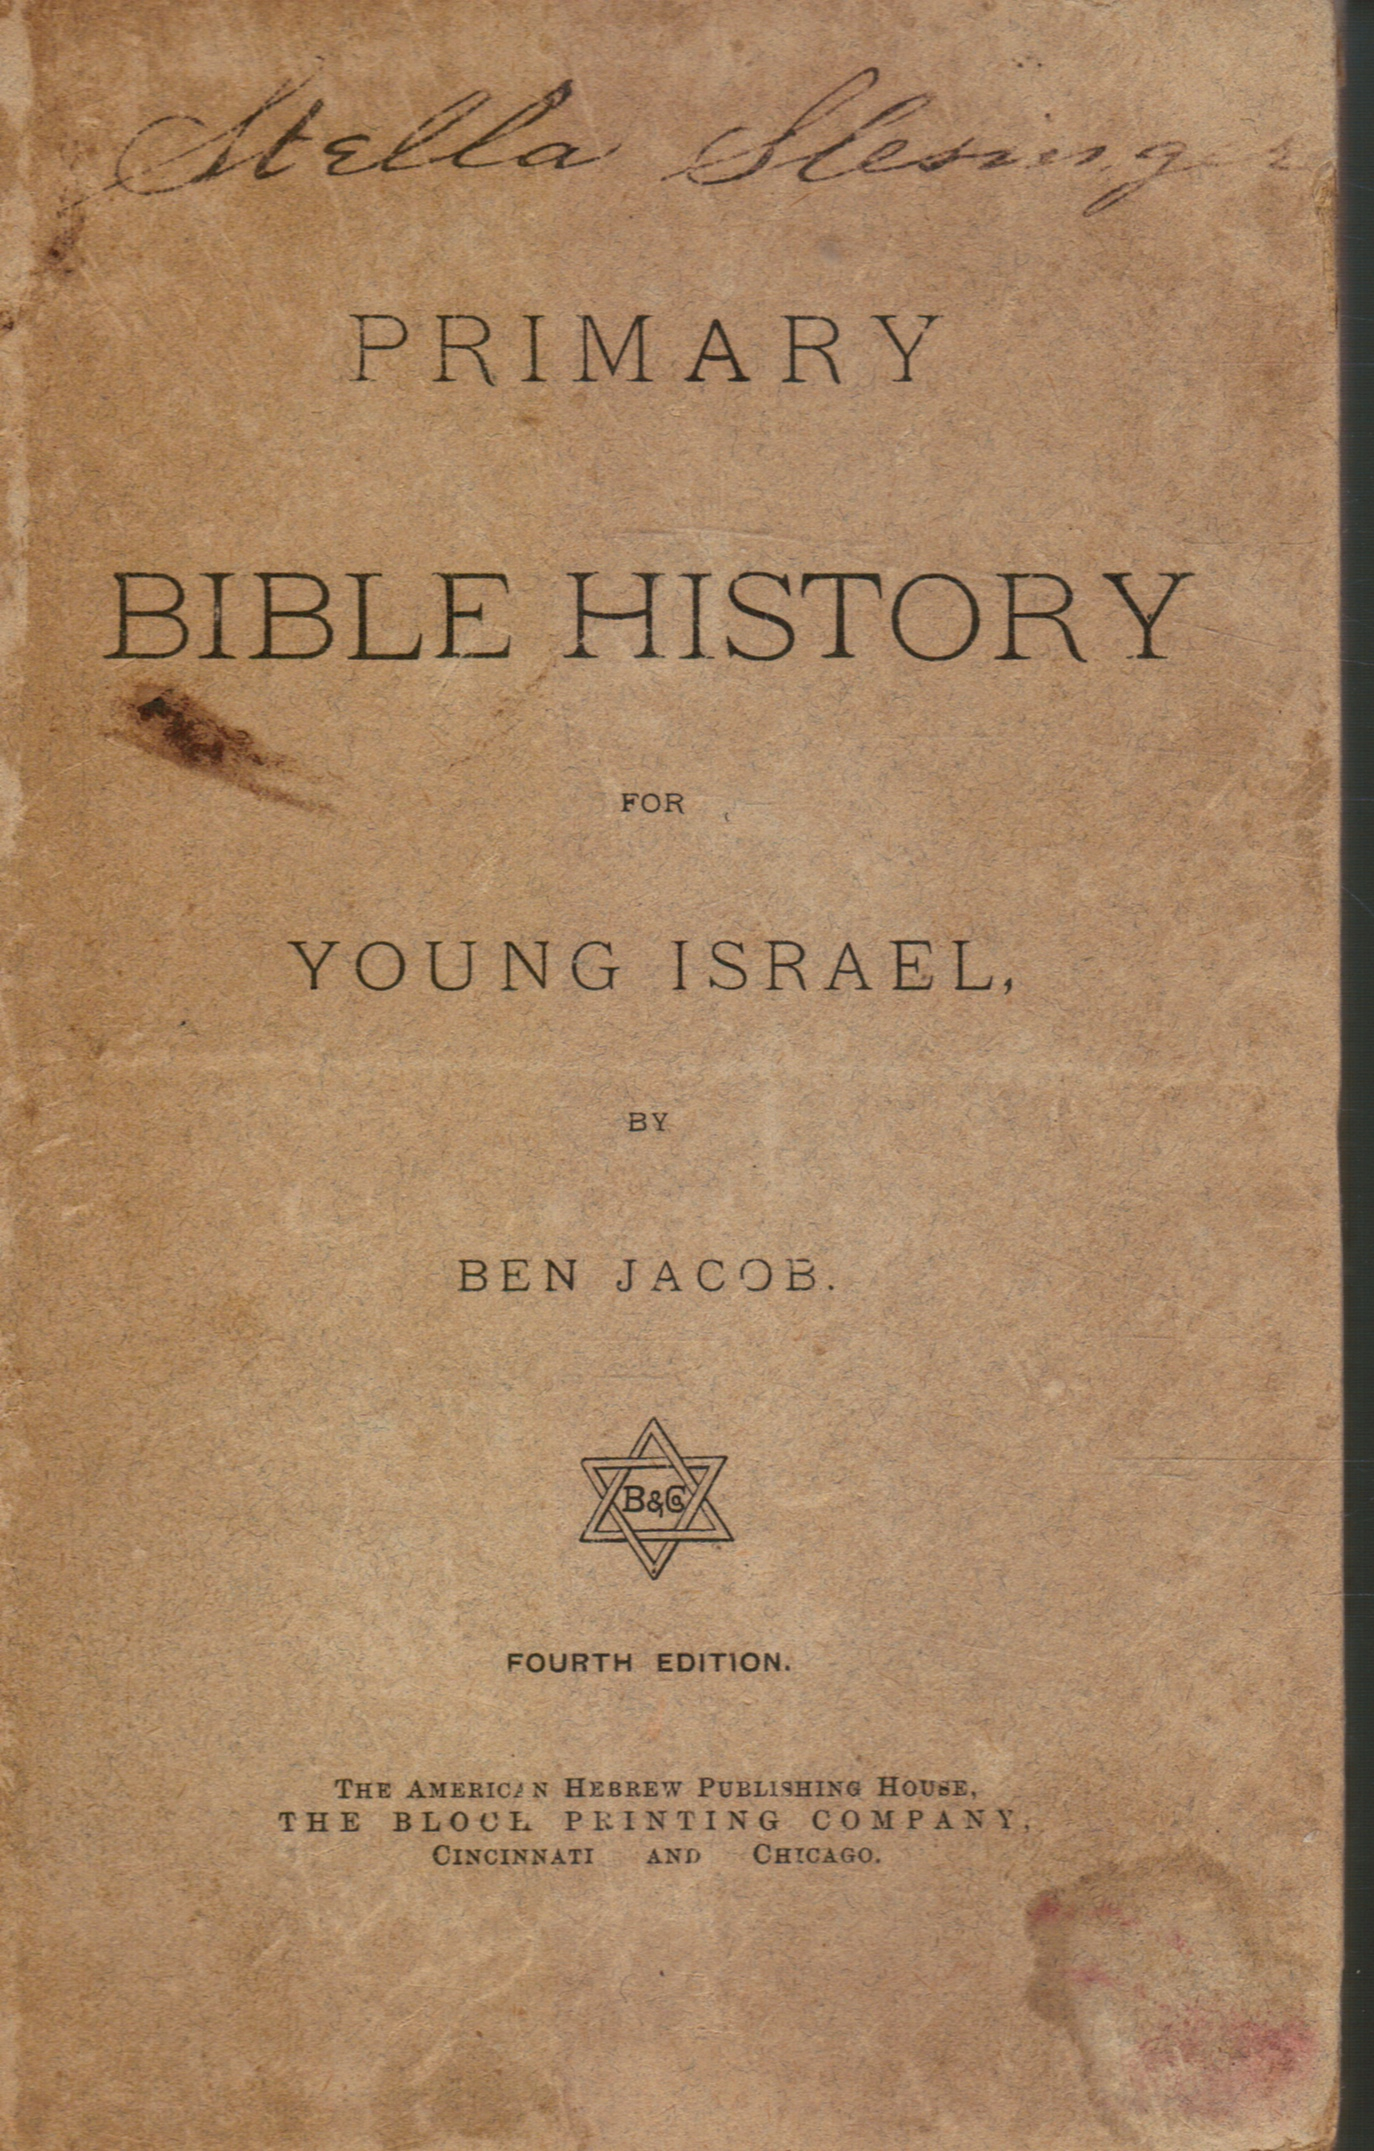 Image for Primary Bible History for Young Israel